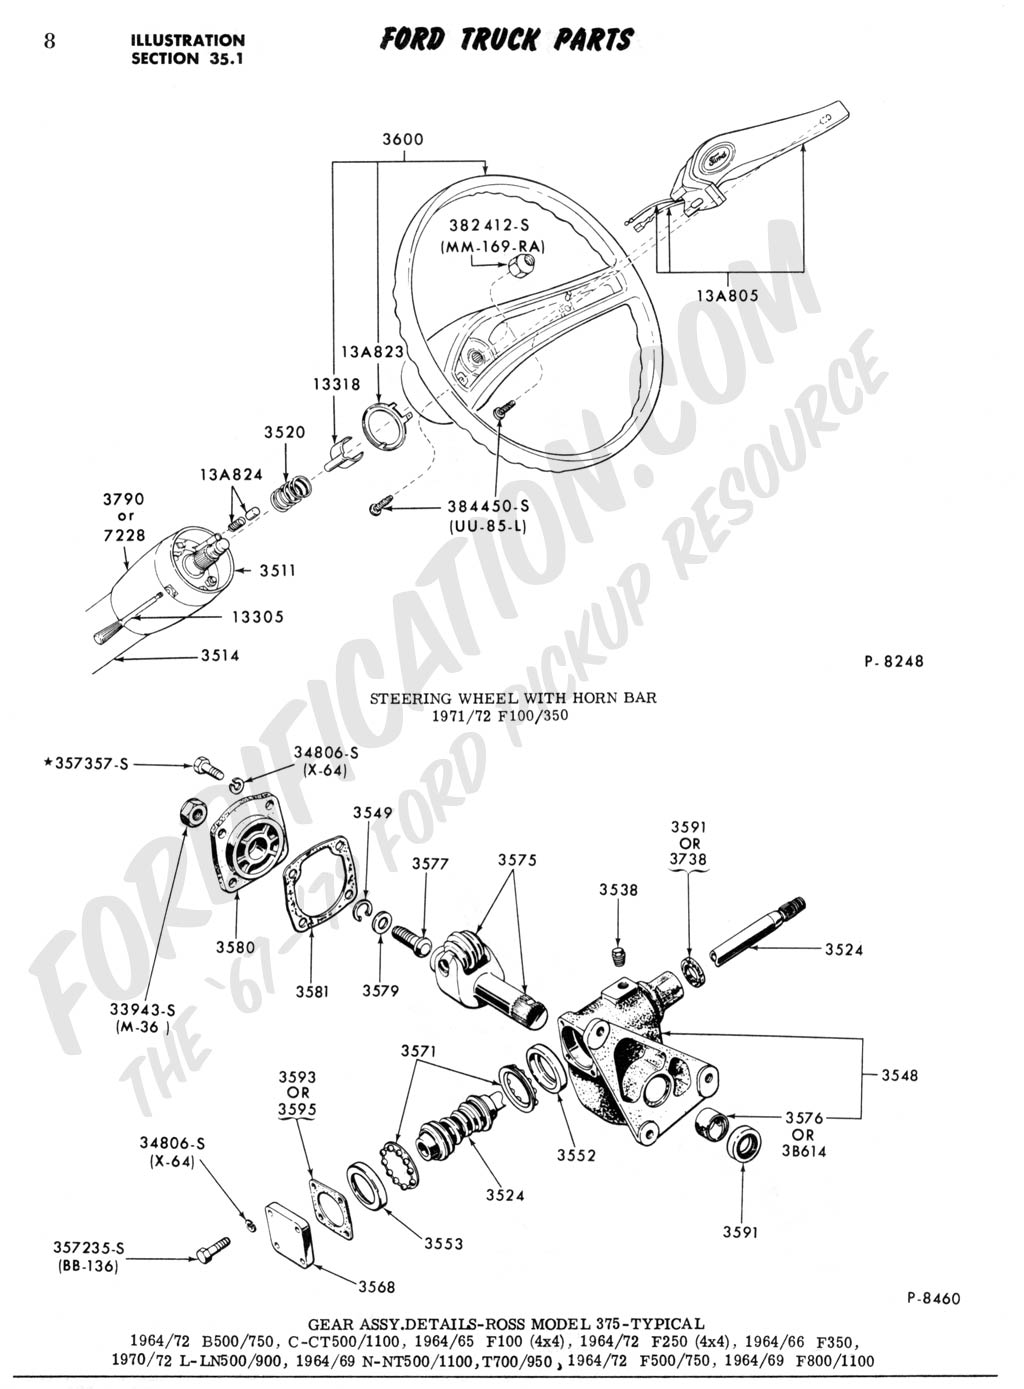 1959 ford f100 wiring diagram of